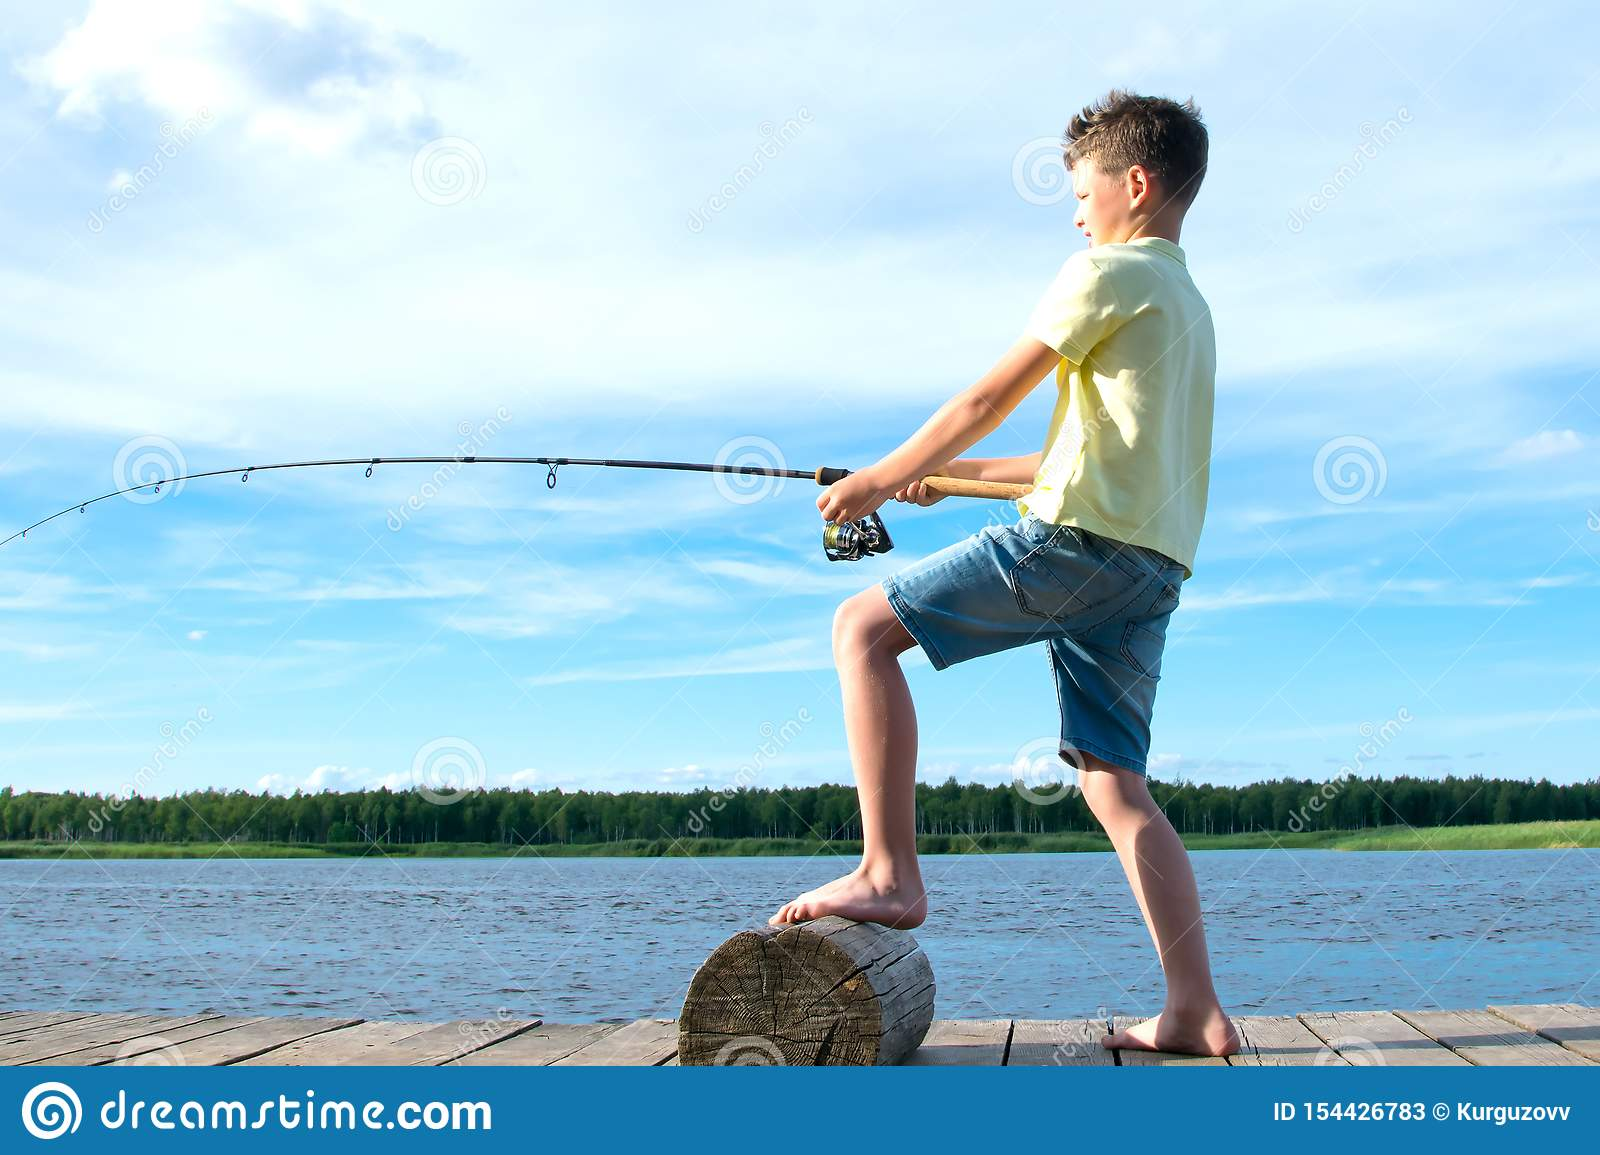 The boy on the pier, against the blue lake and the sky,pulls the catch on a fishing rod